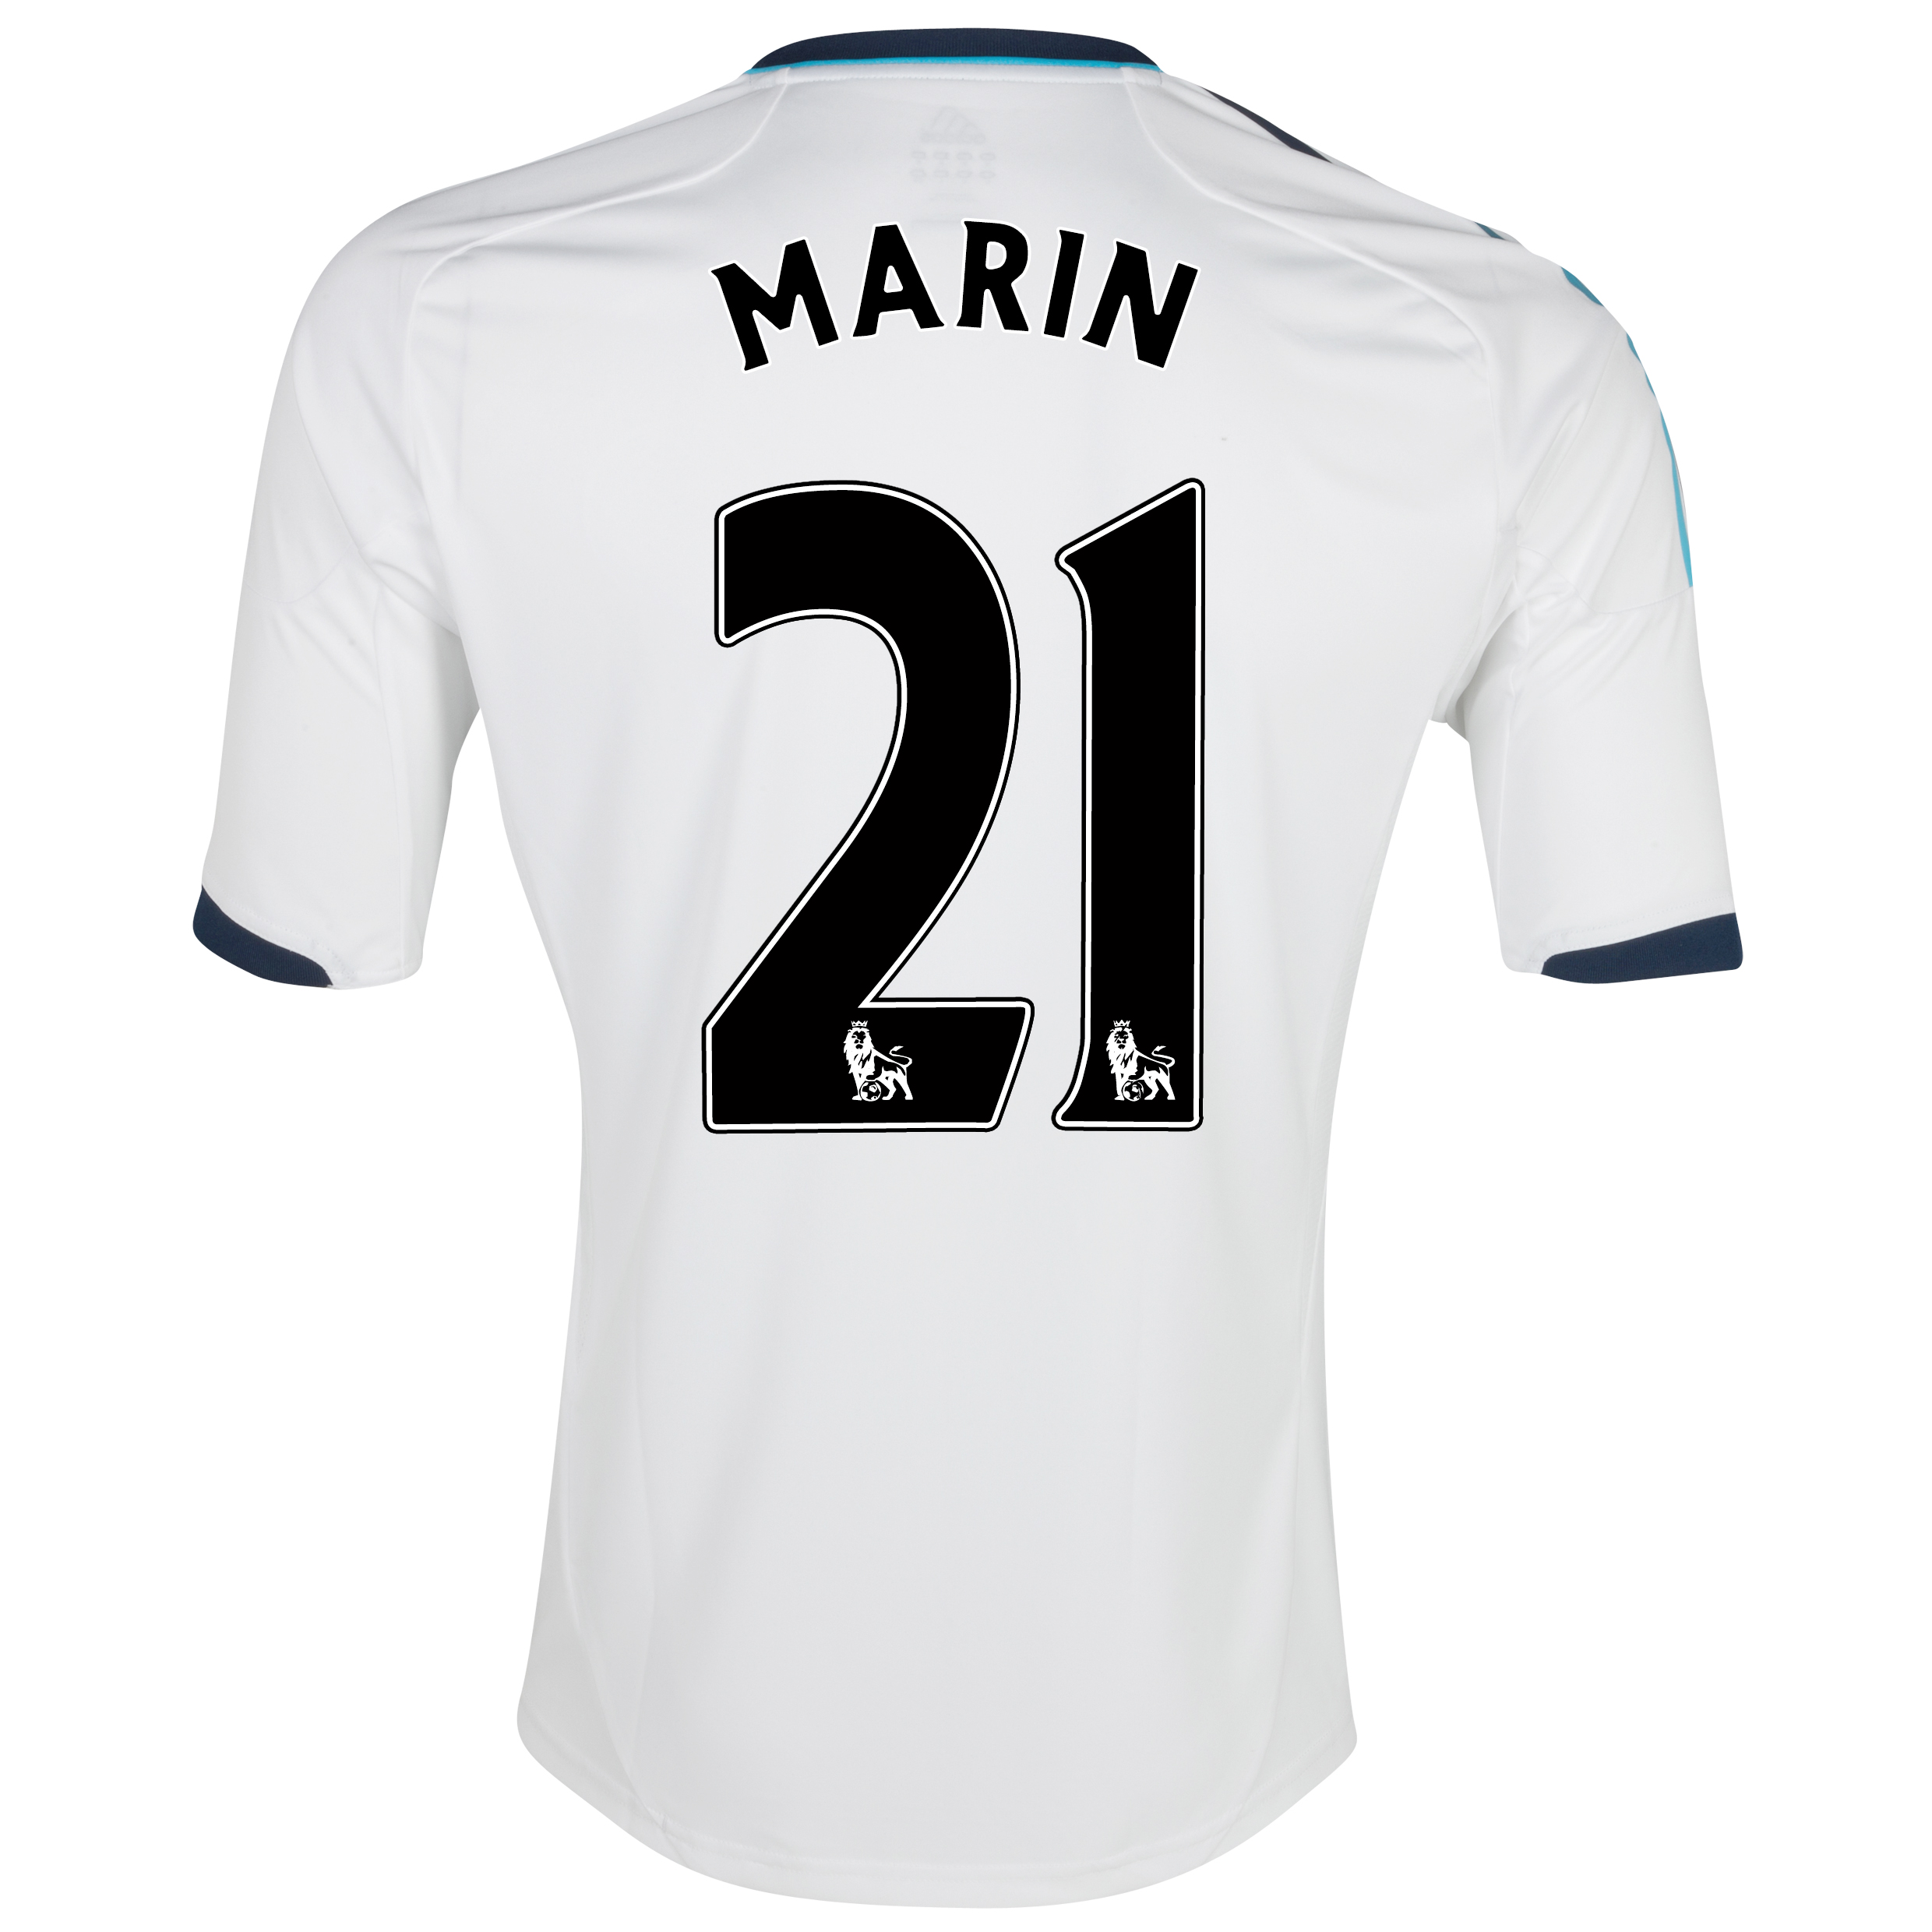 Chelsea Away Shirt 2012/13 - Youths with Marin 21 printing